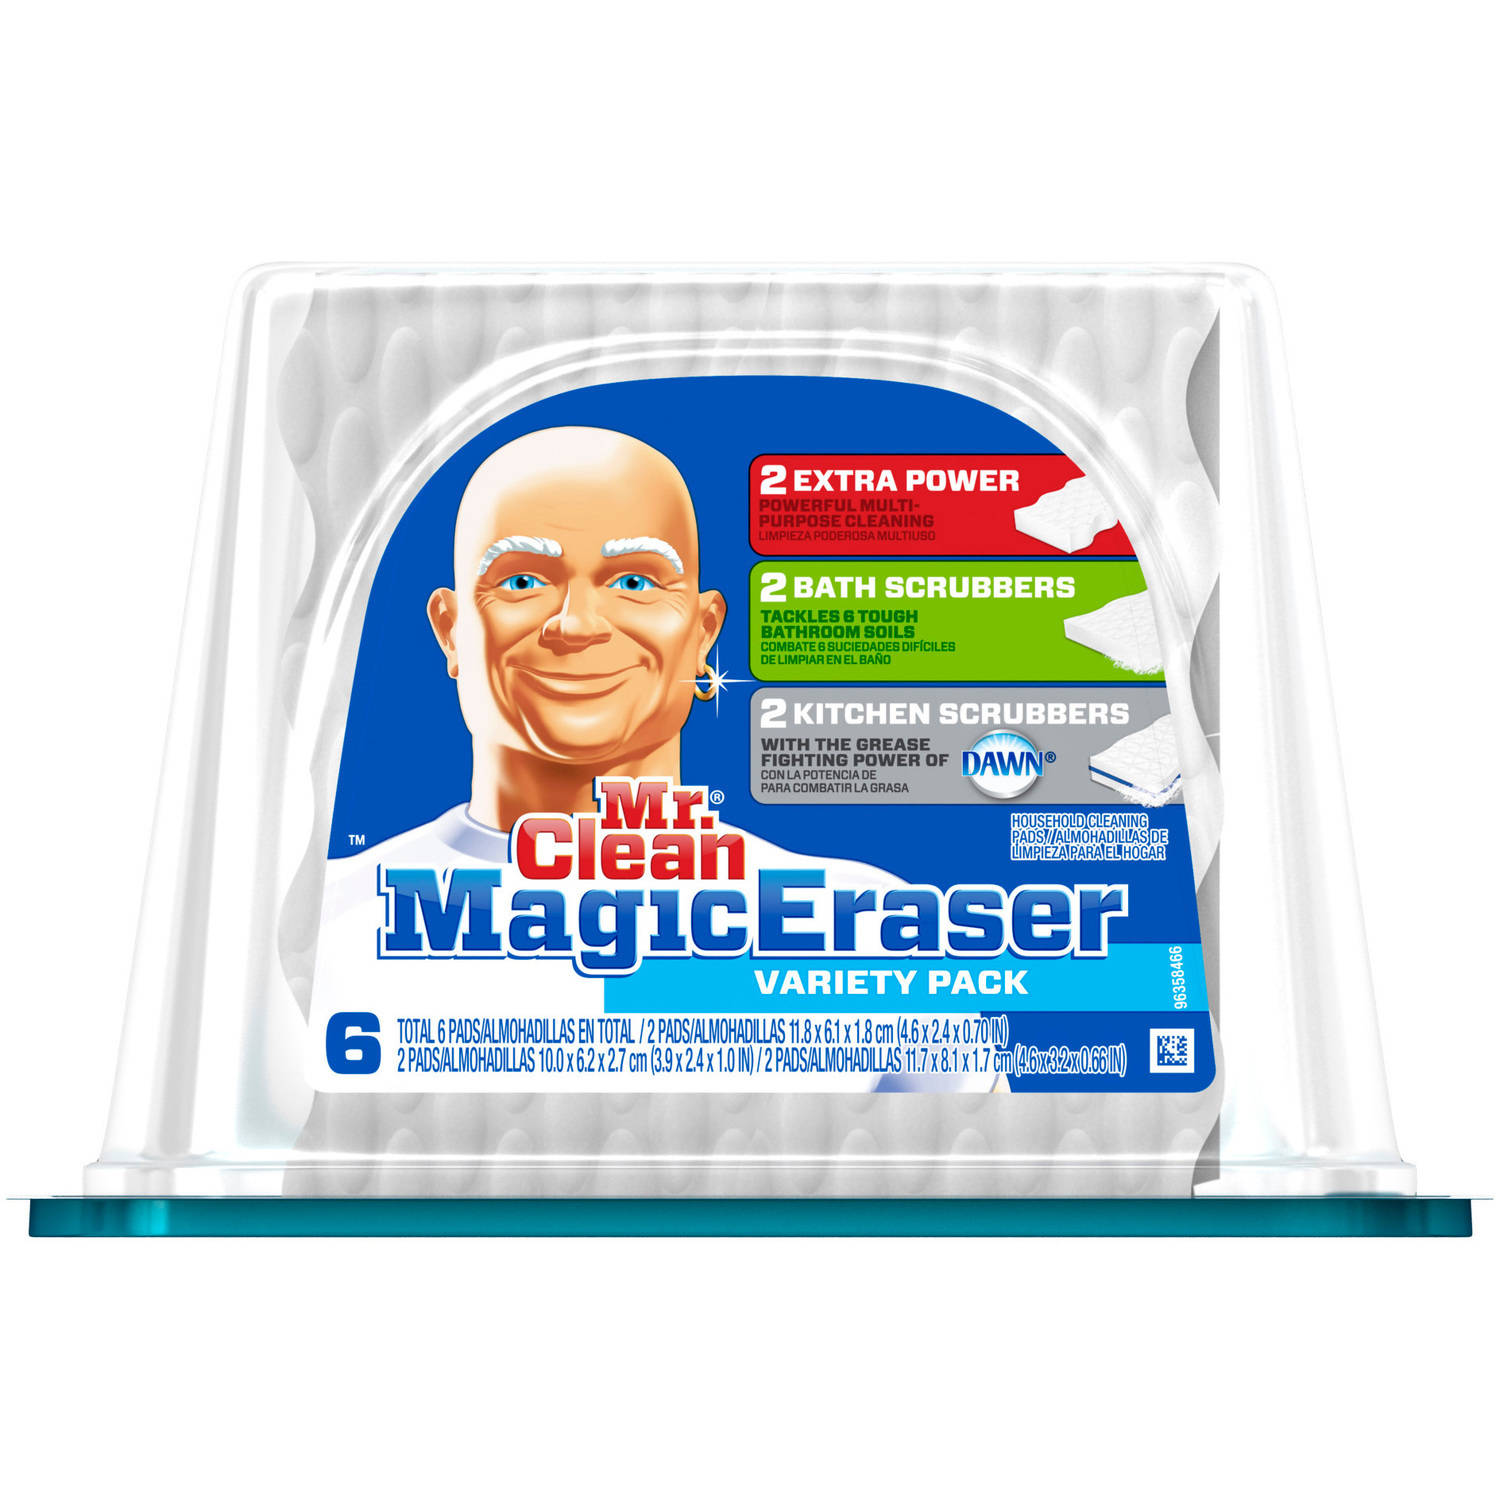 Mr. Clean Magic Eraser Cleaning Pads Variety Pack, 6 count